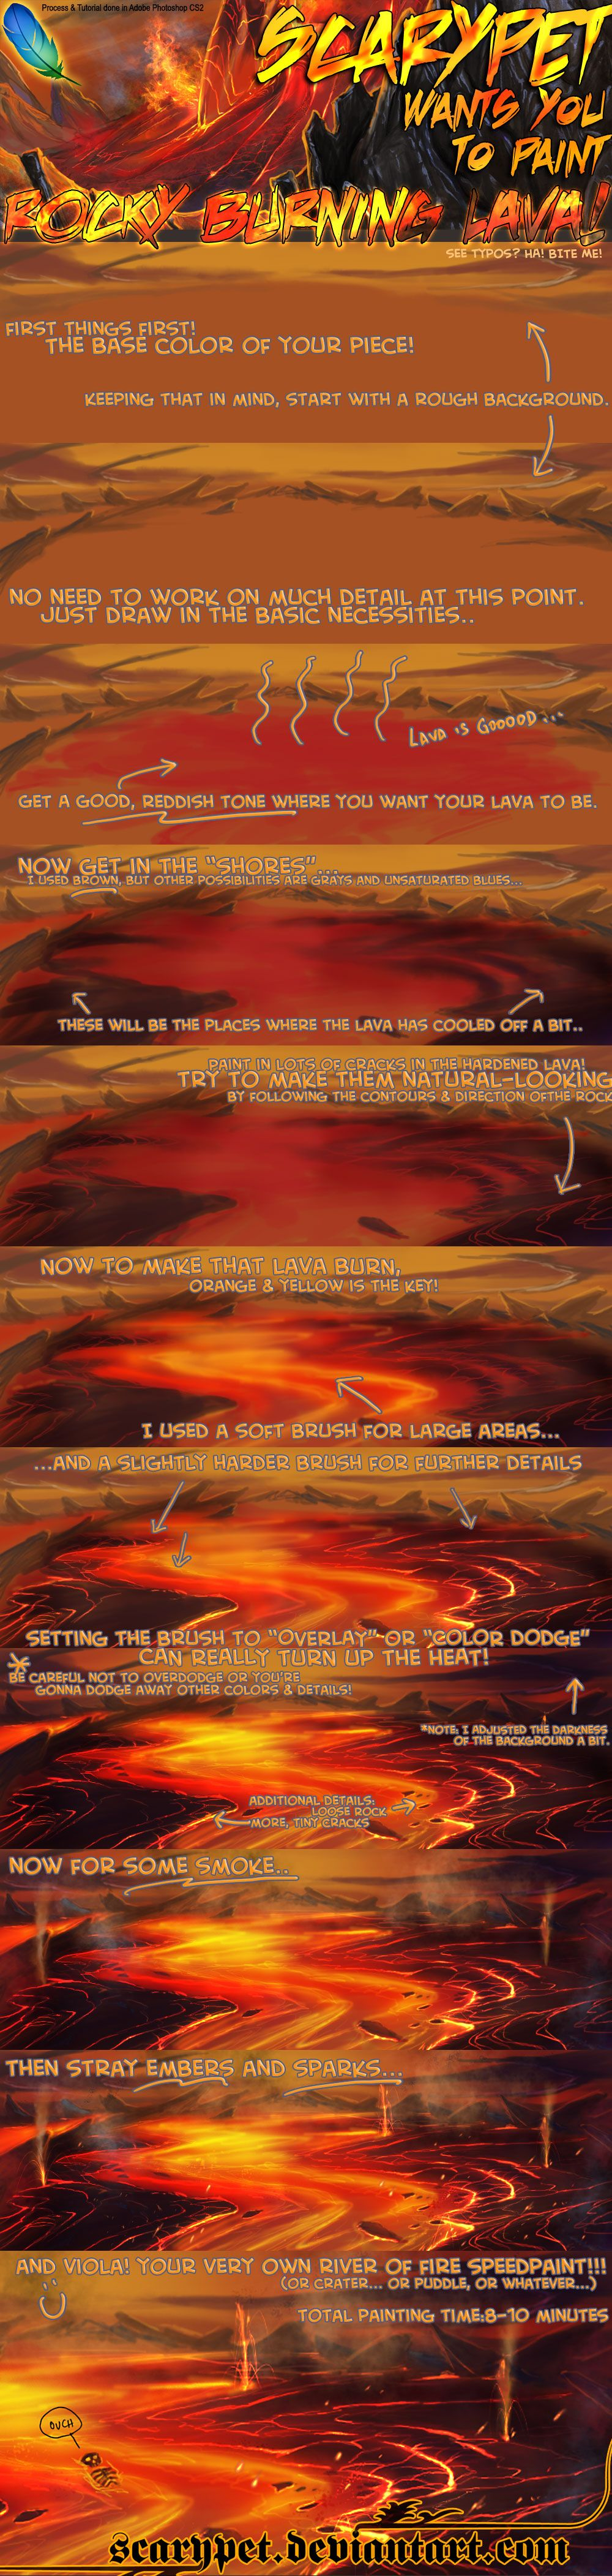 Scarypet's LAVA TUTORIAL by scarypet on deviantART